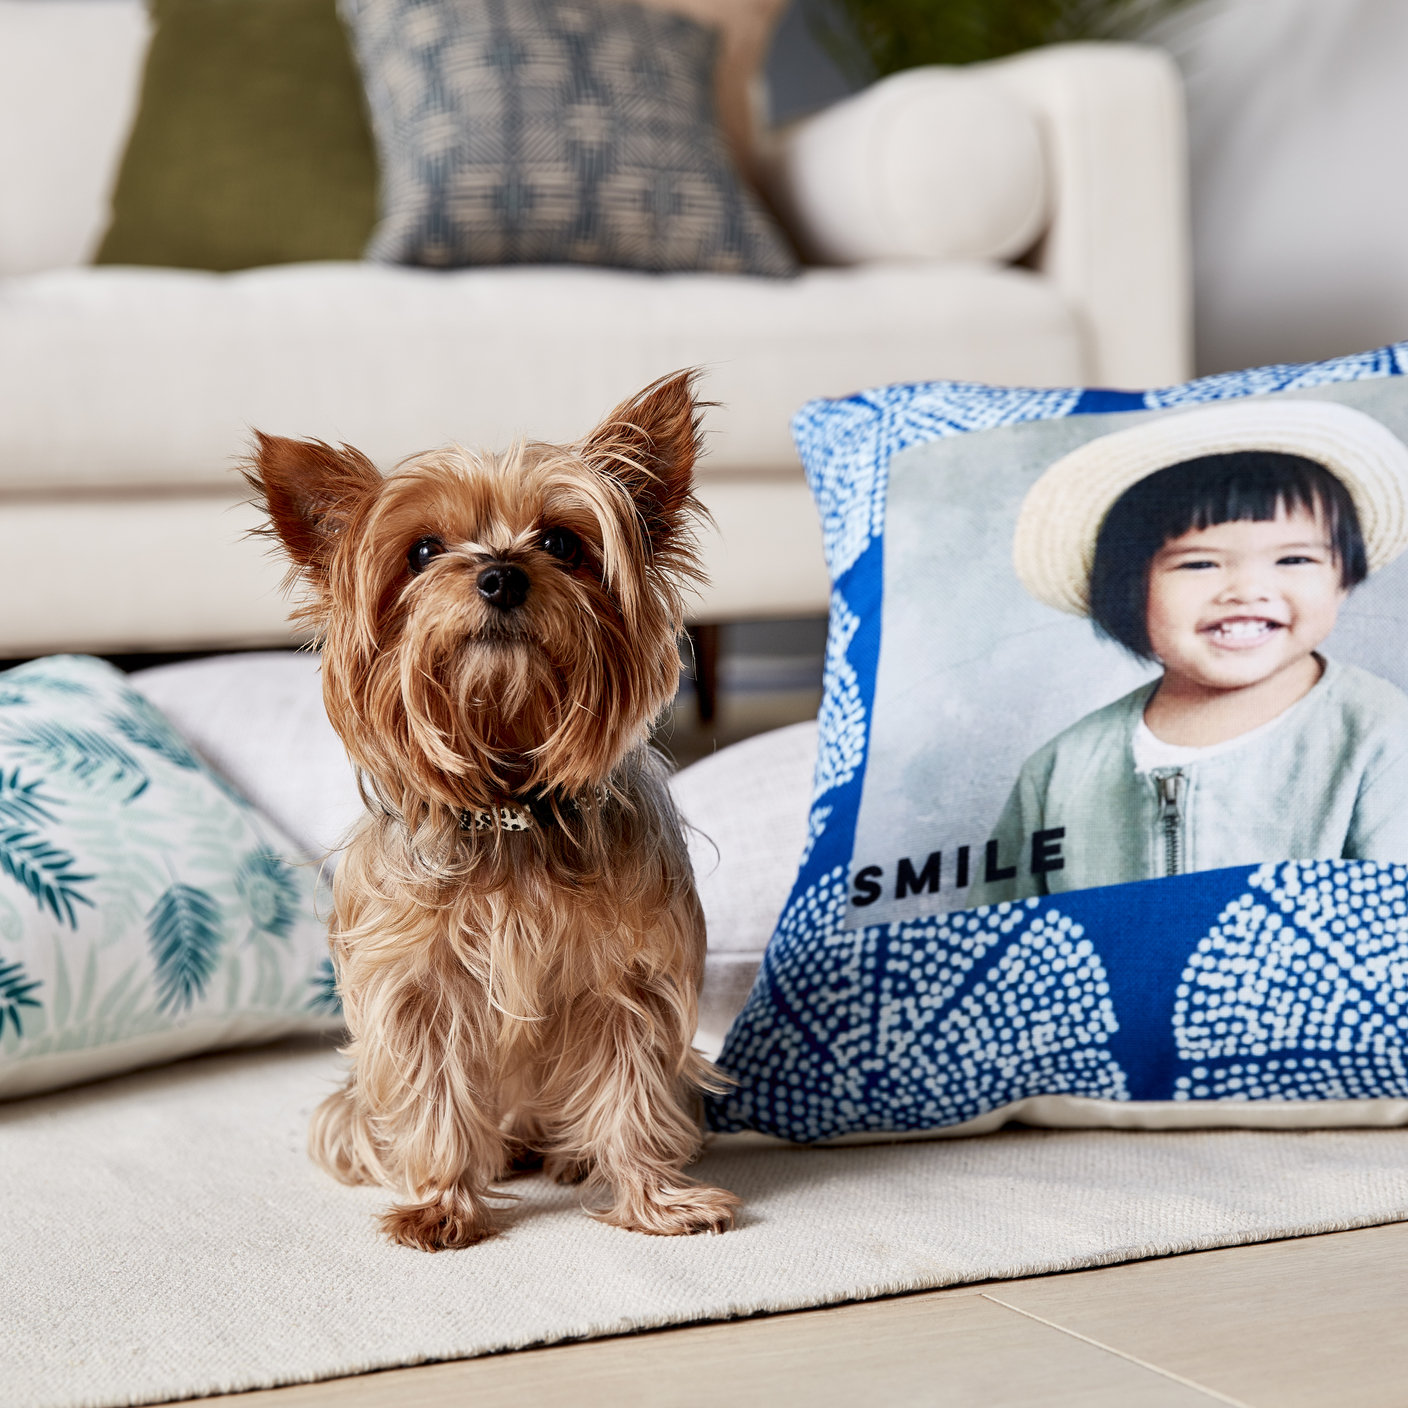 dog next to personalized pillow